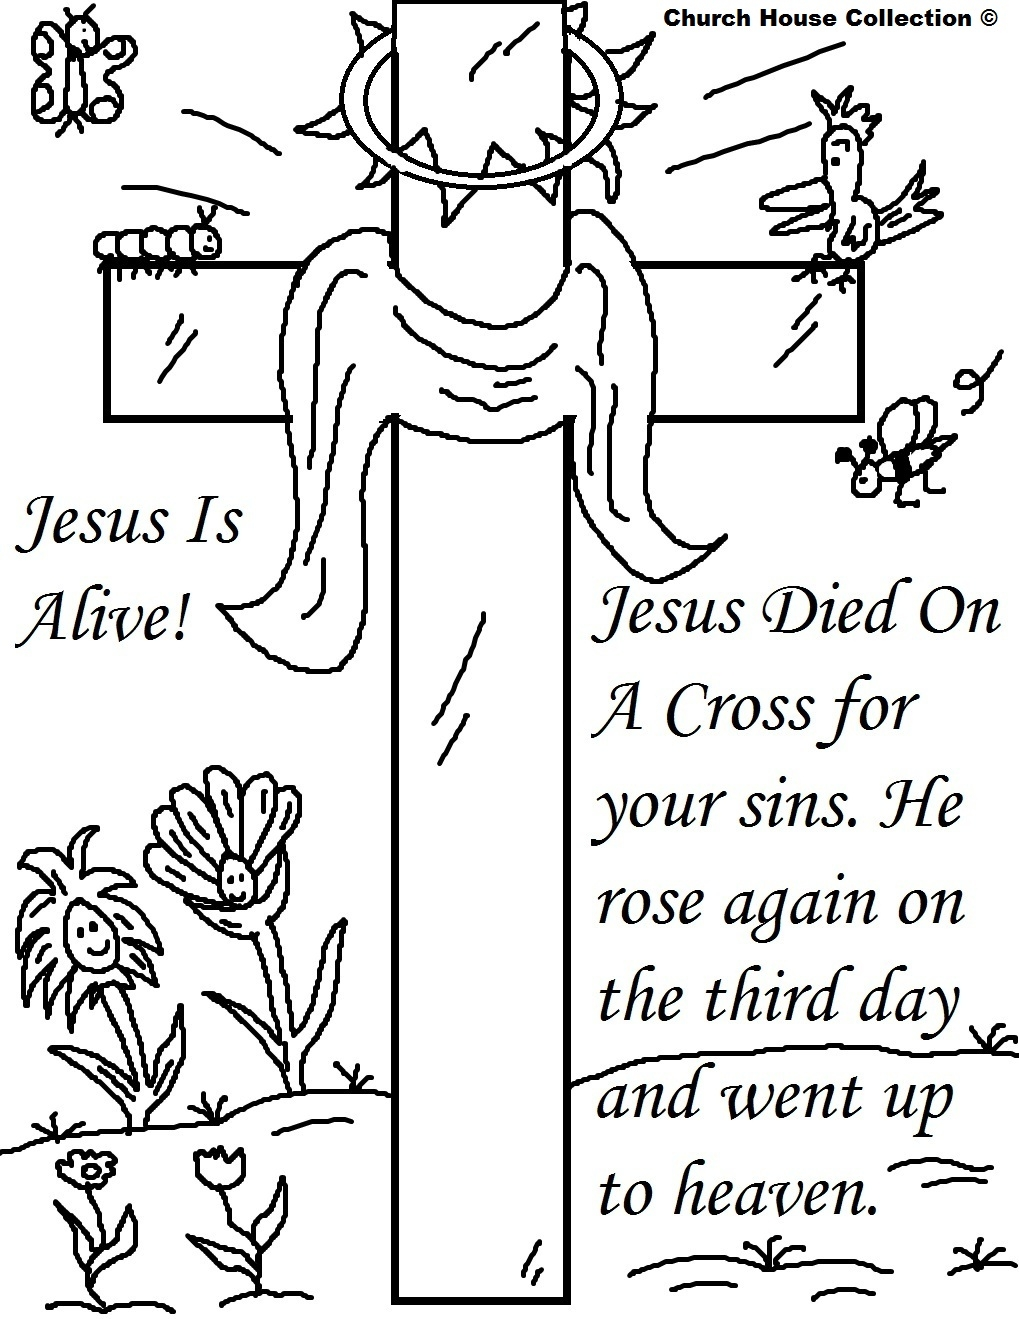 Resurrection Coloring Pages - Church House Collection Blog Easter Jesus Resurrection